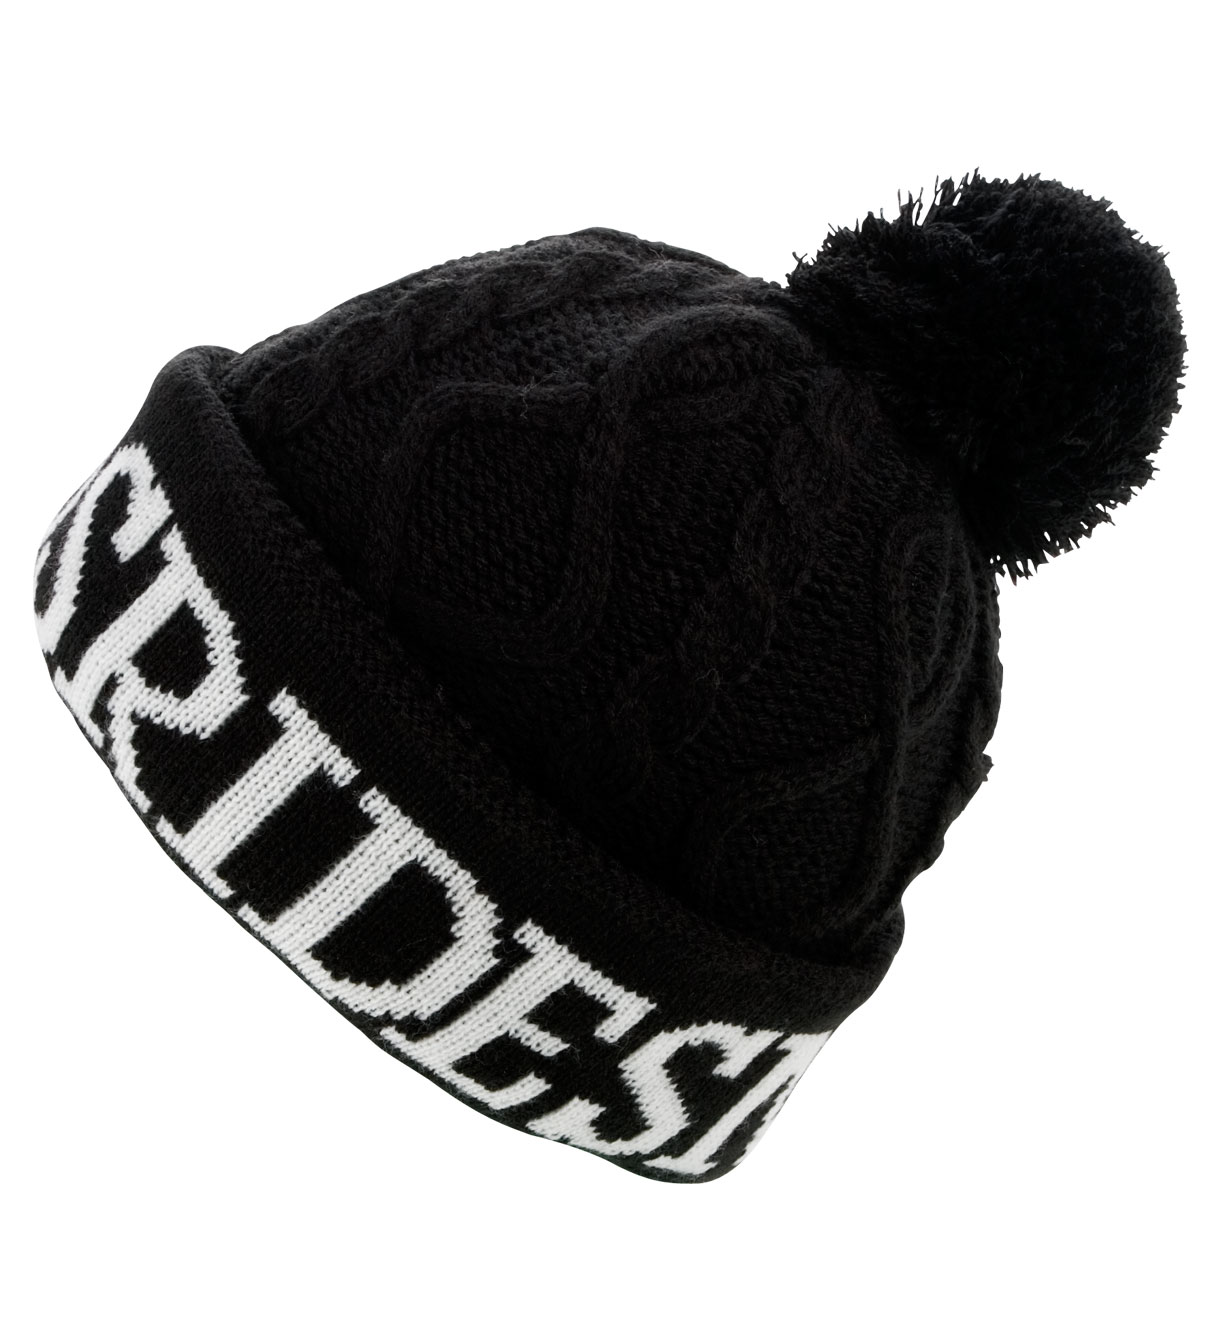 Keep the heat in and your head dry with Ride's function-meets-fashion Varsity beanies.Key Features of the Ride Varsity Beanie: One-Size Fits Most Heavy-Weight 100% Acrylic - $11.16